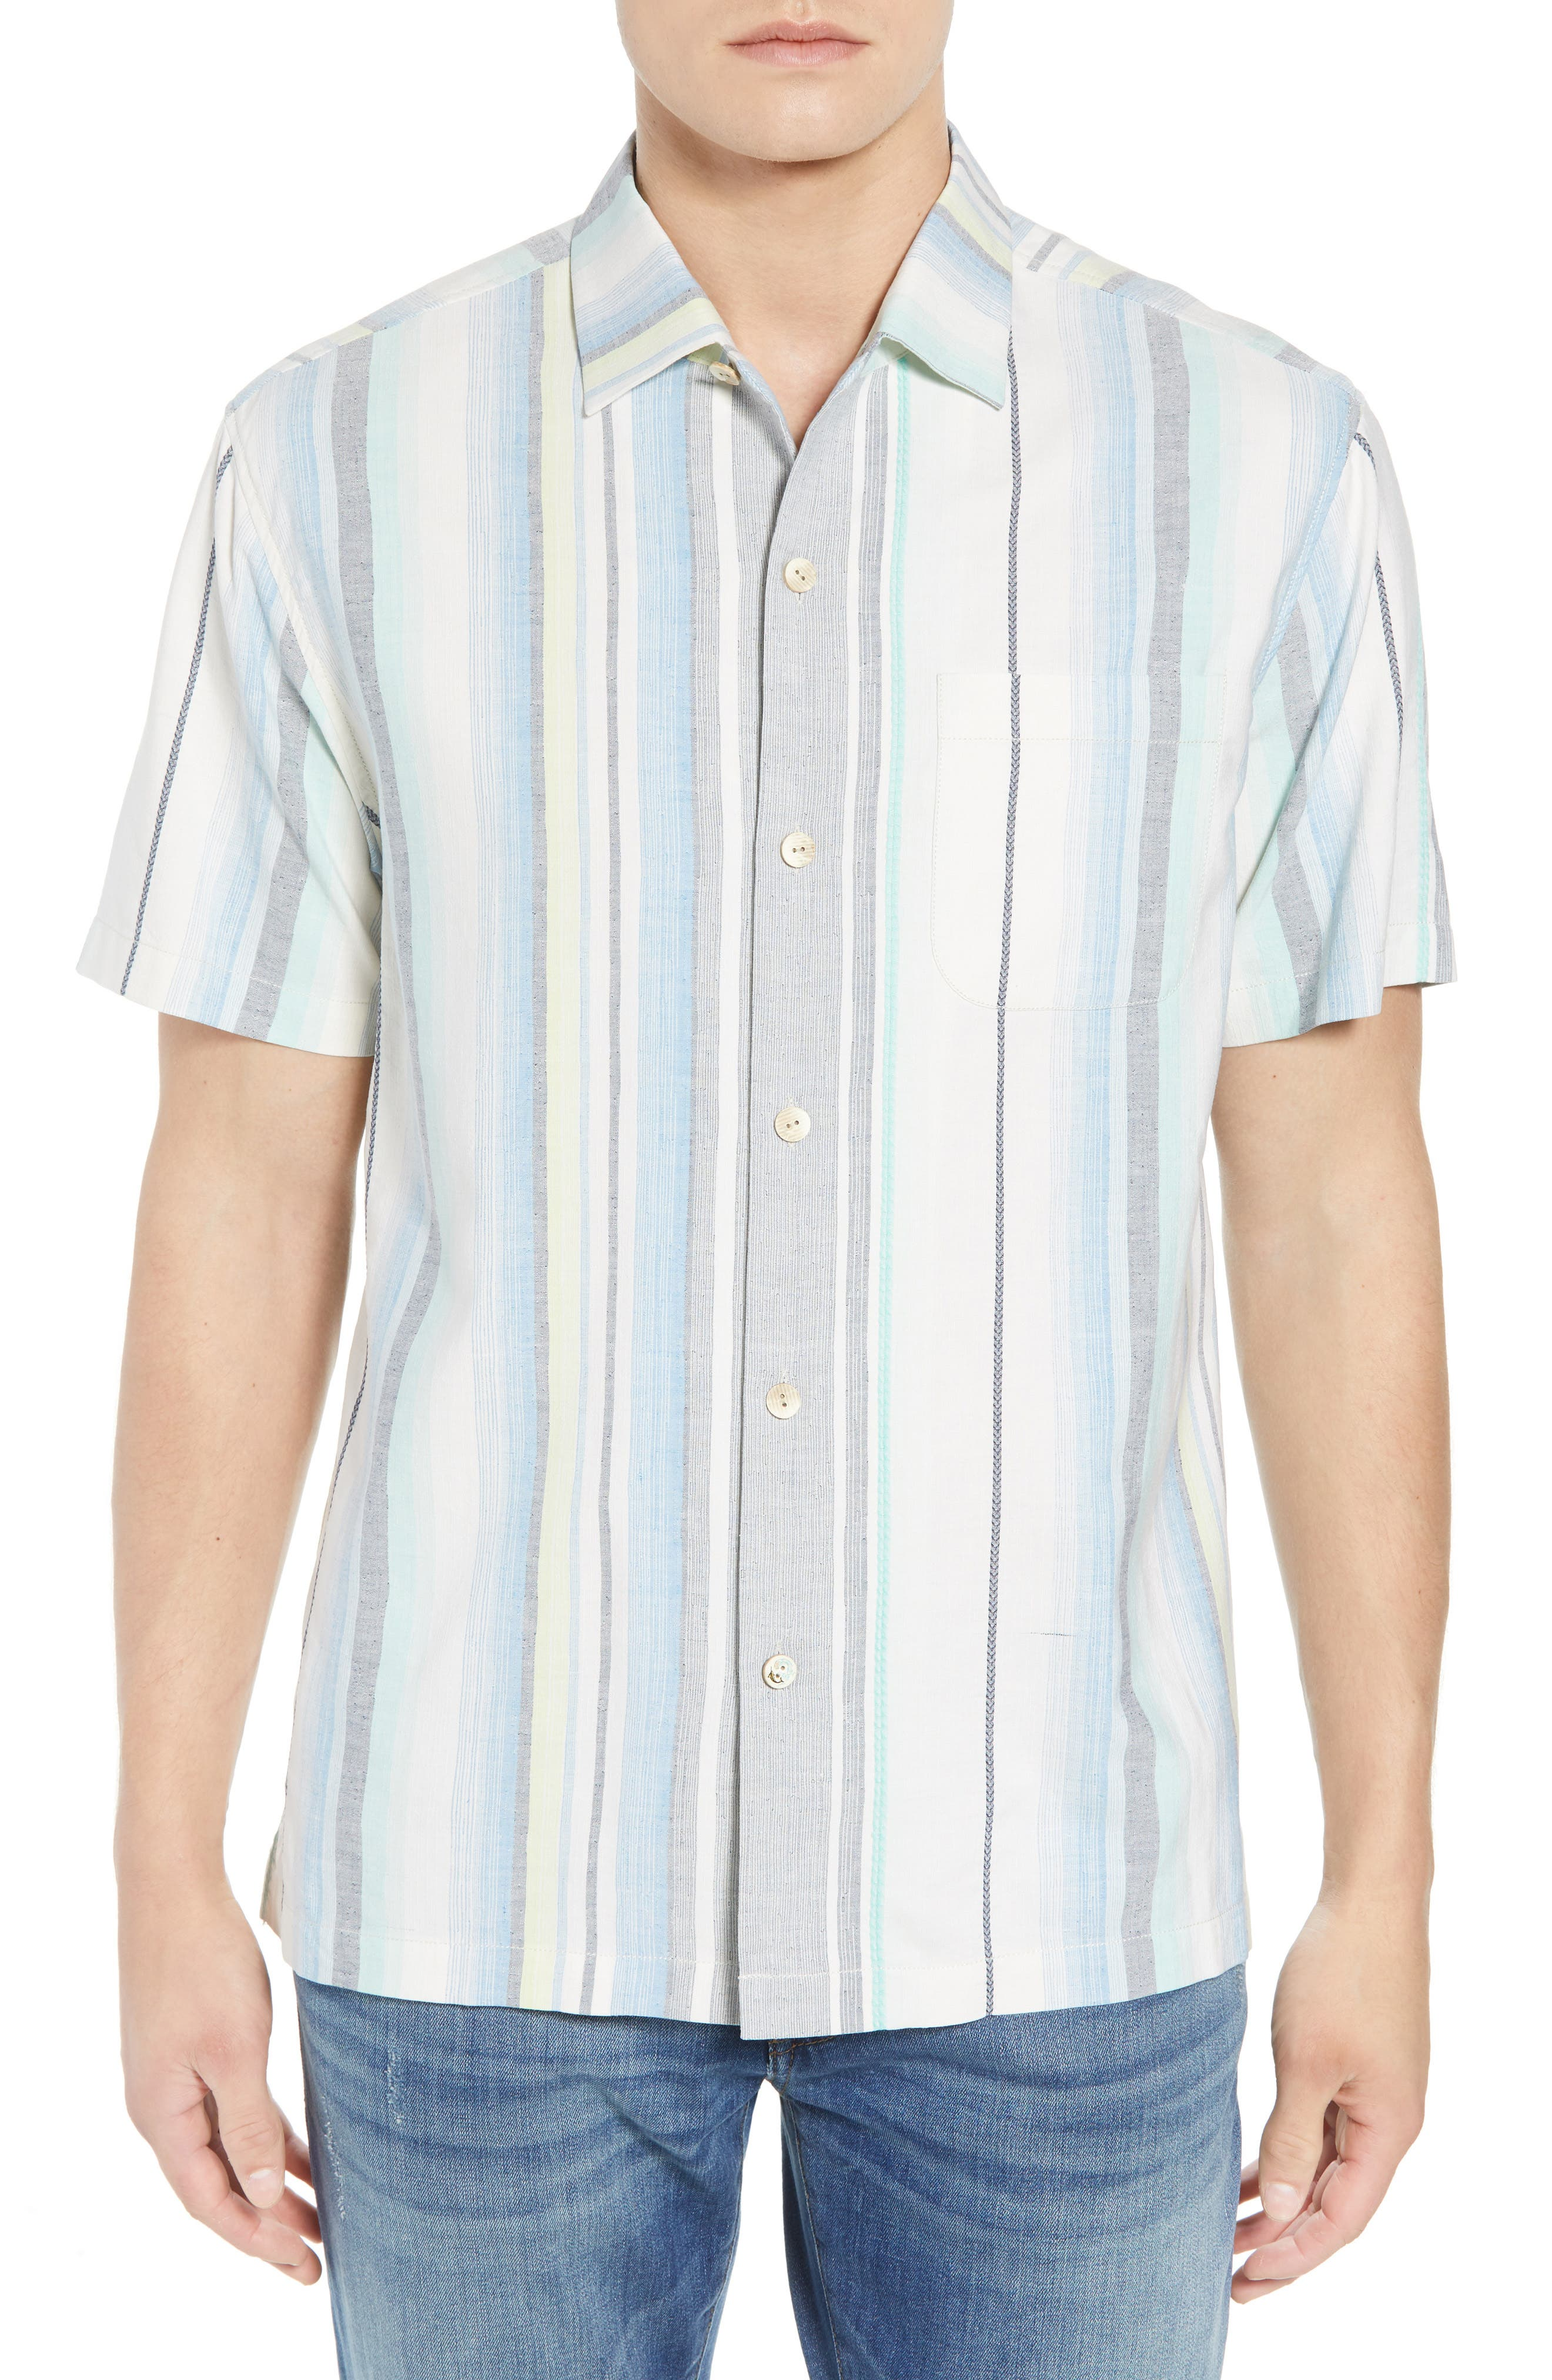 Posado Sands Silk Camp Shirt,                             Main thumbnail 1, color,                             BLUE ASTER